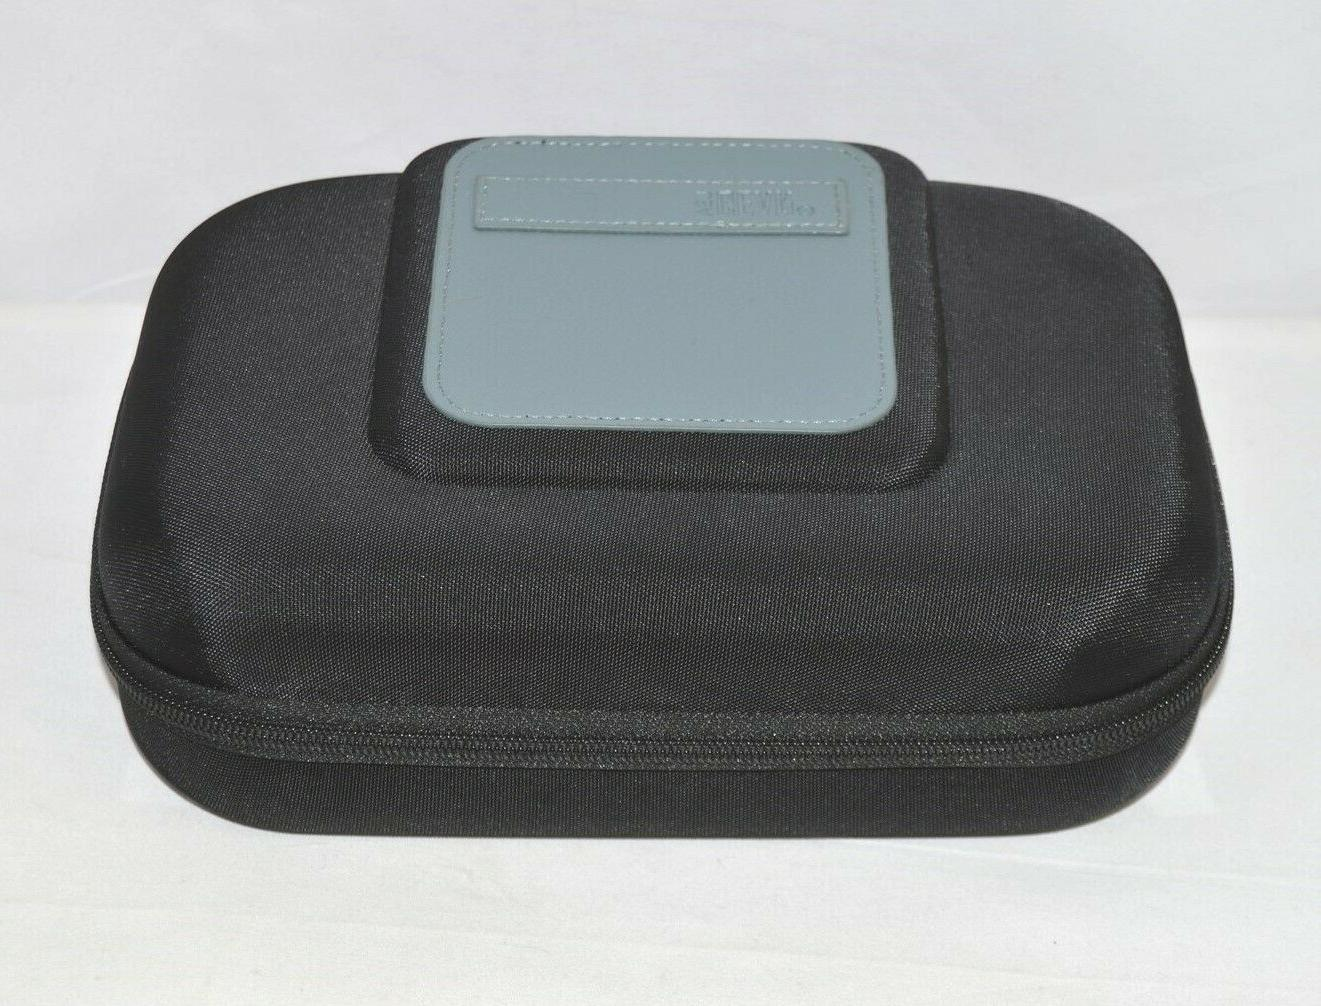 multitrack recorder carrying storage case hard shell